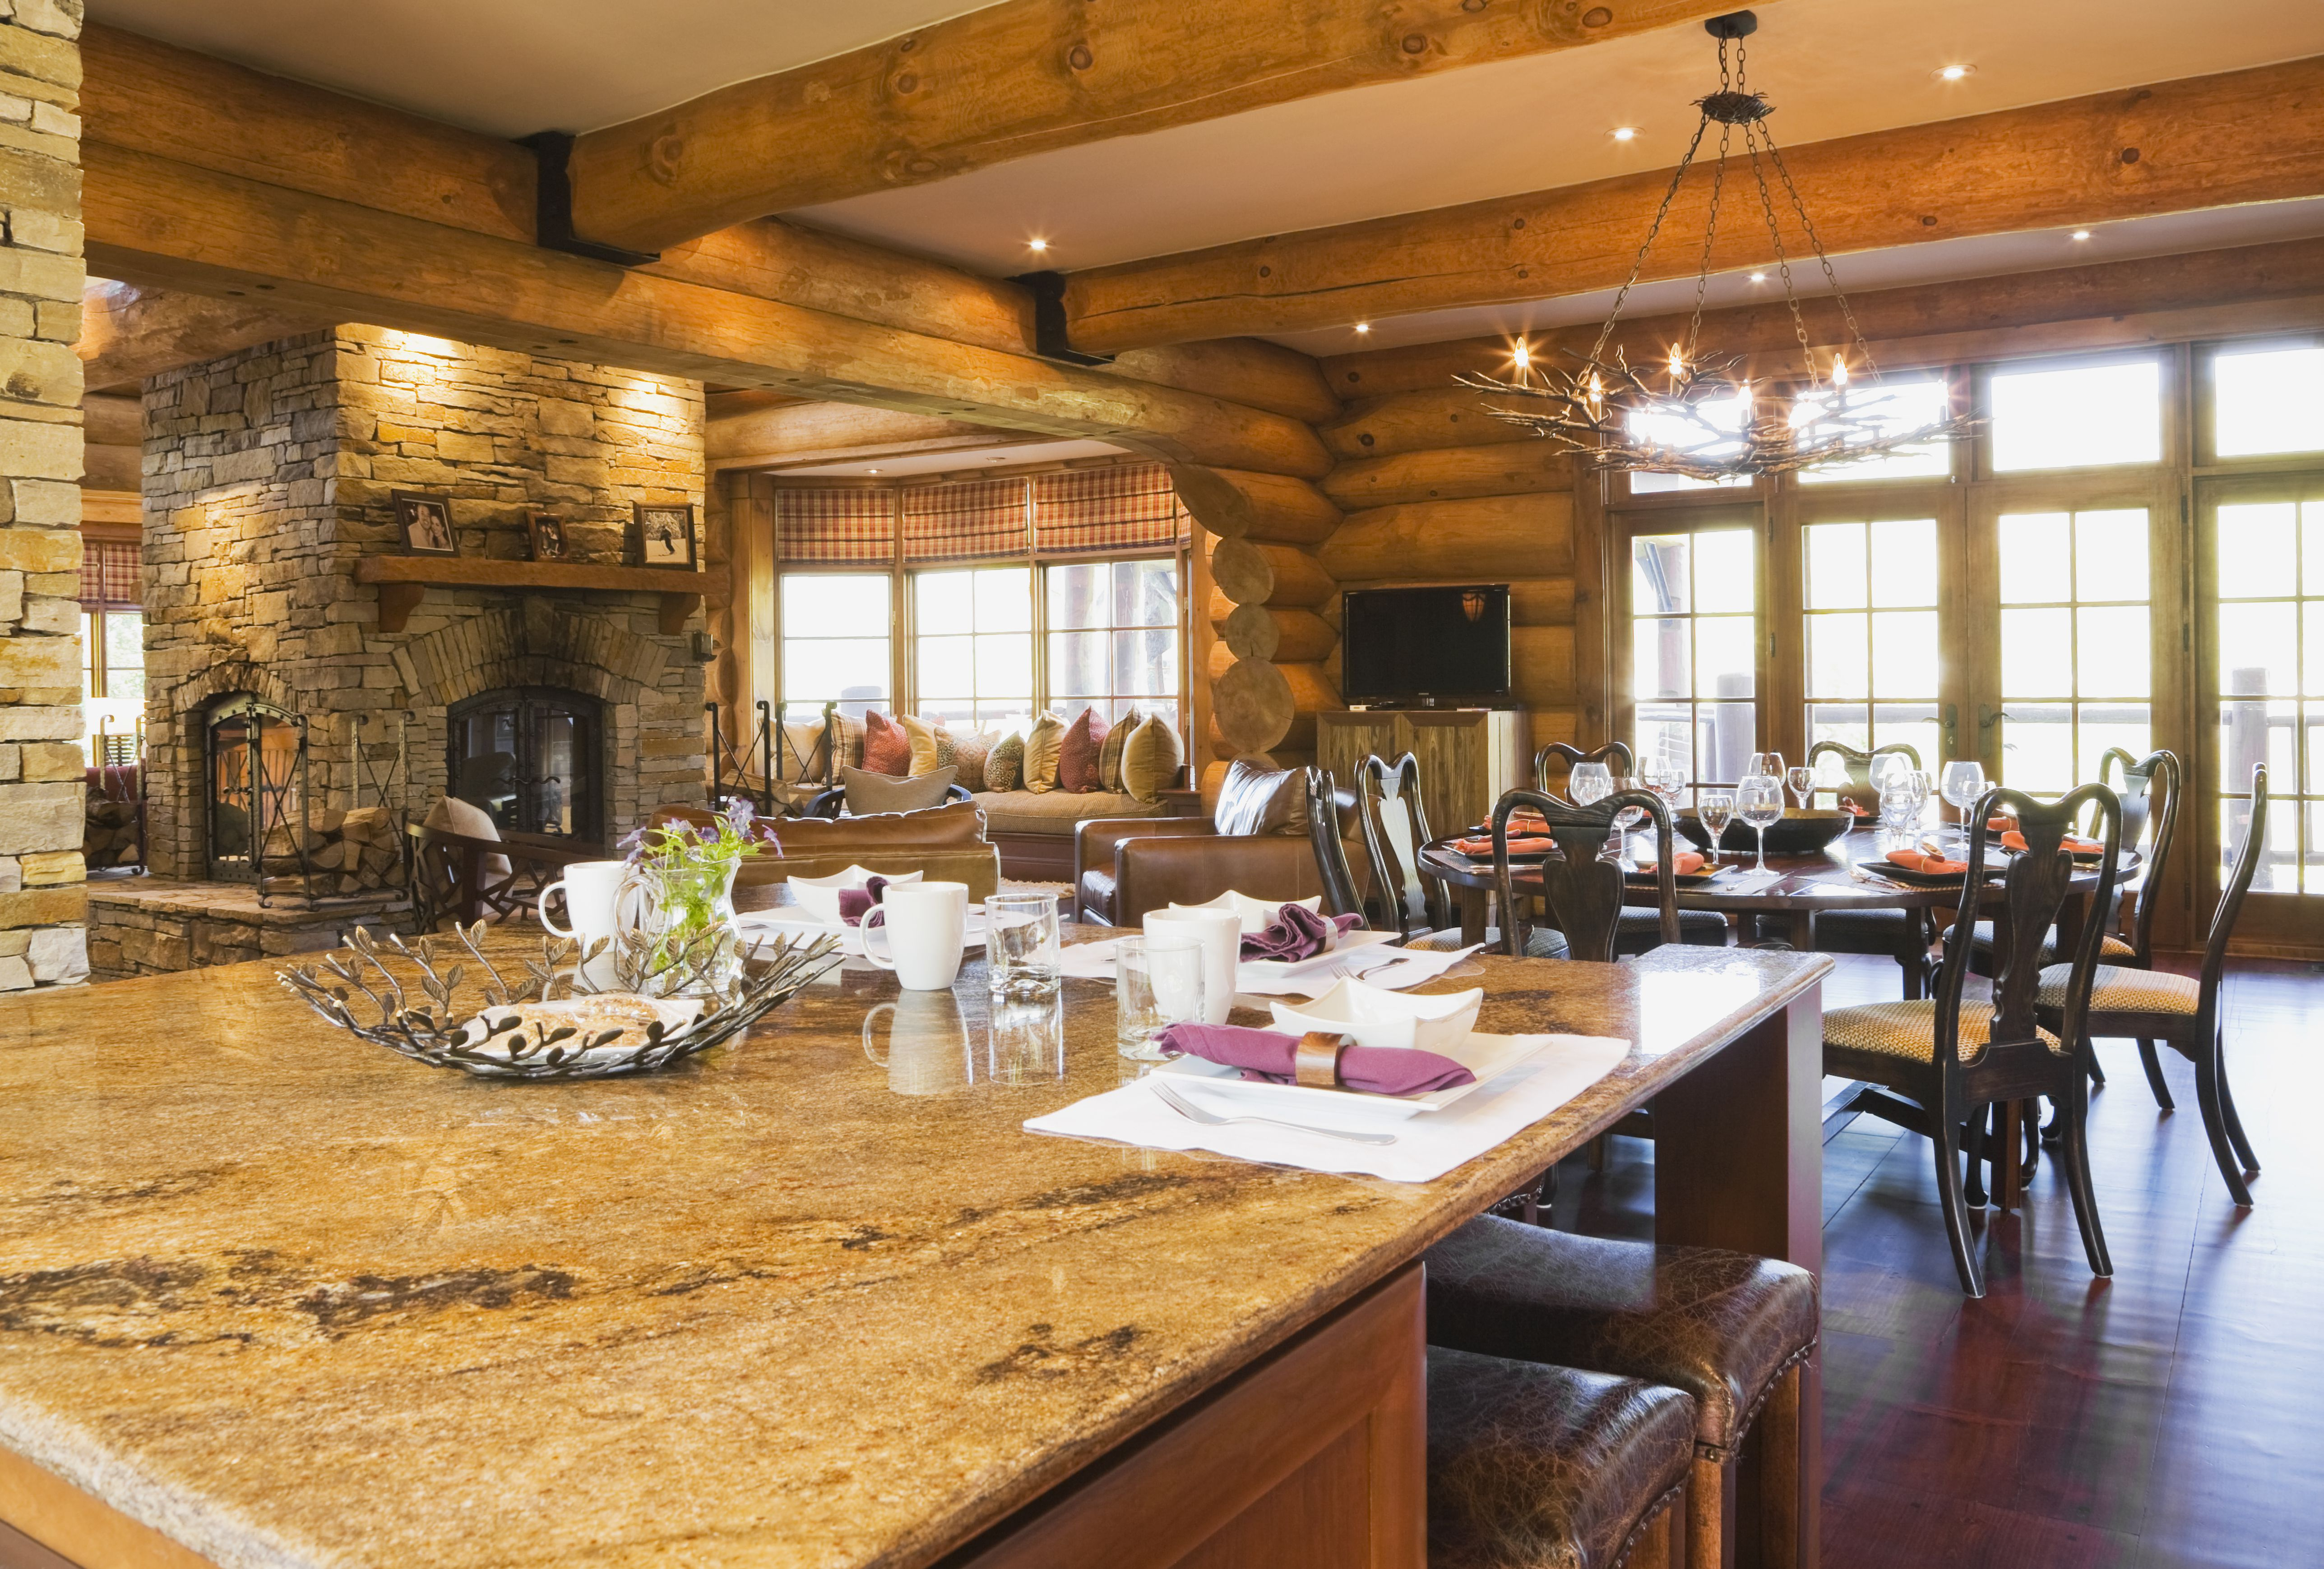 Island with granite countertop in kitchen and round wooden dining room table with 8 chairs inside a luxurious cottage style log home, Quebec, Canada.